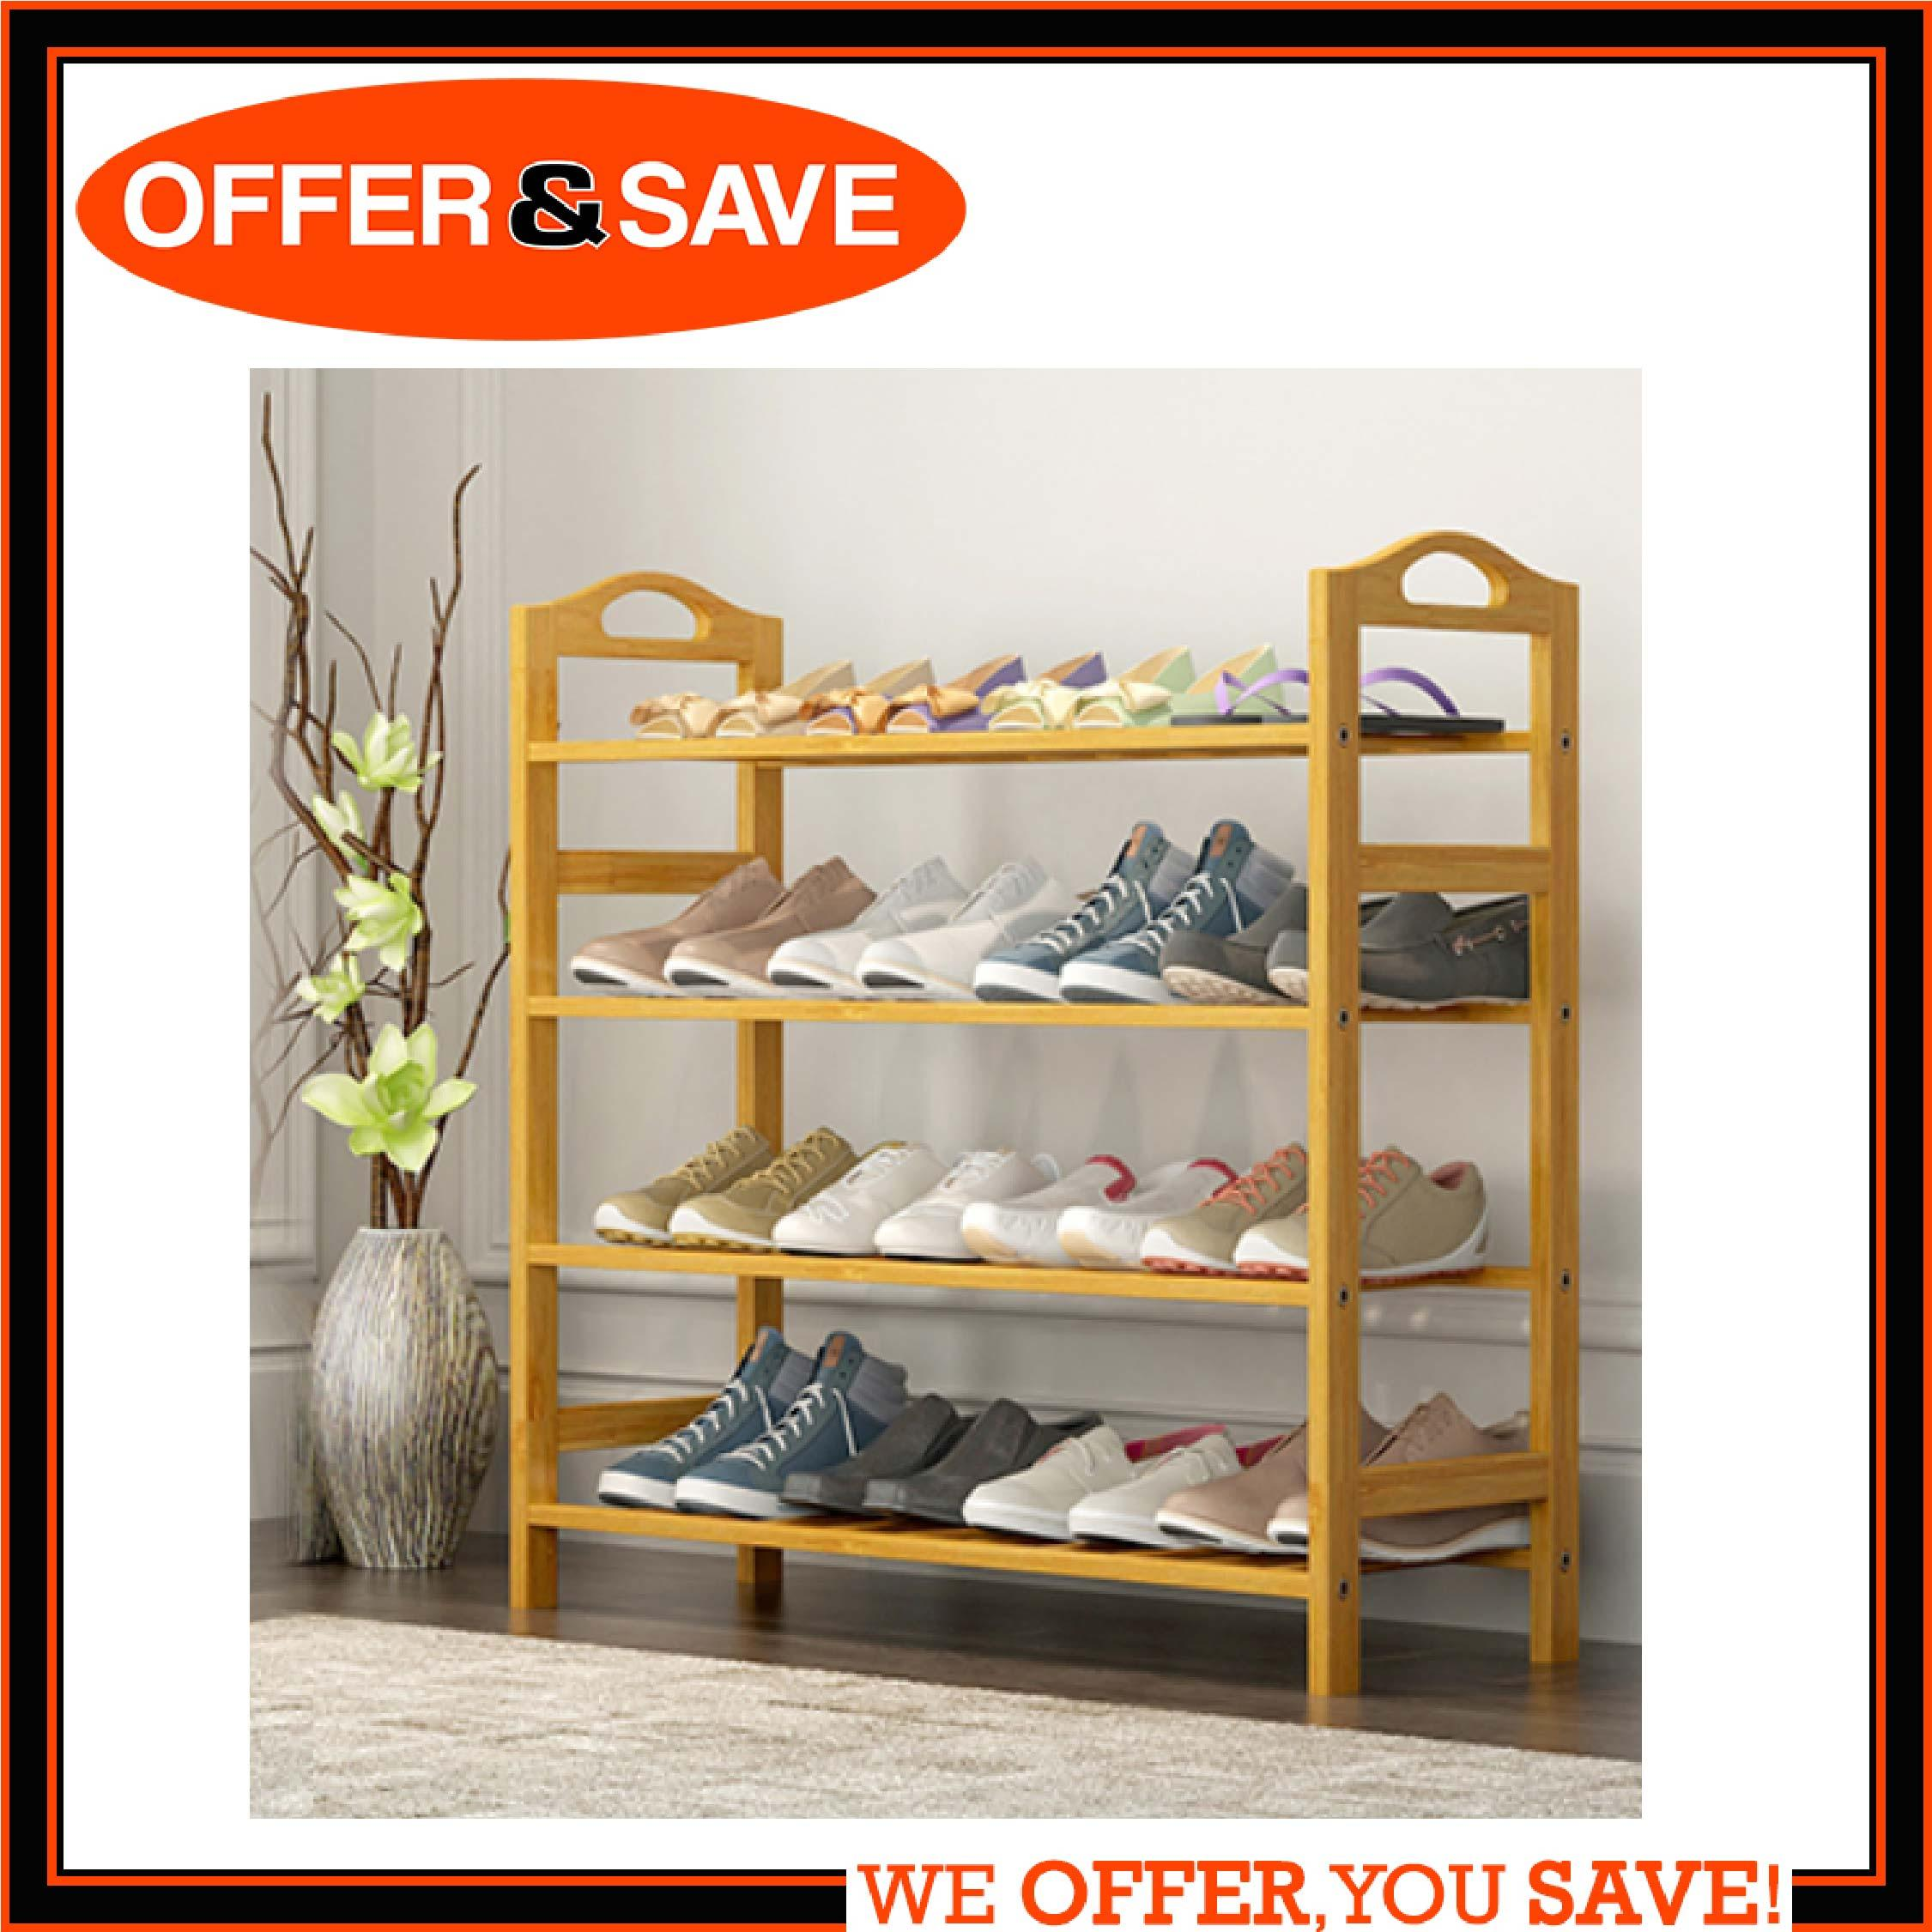 ONS 4 Tiers Natural Bamboo Shoe Rack - Durable Wooden Shoe Organizer/Space Saving/Environmentally Friendly/Utility Storage Shelf for Home